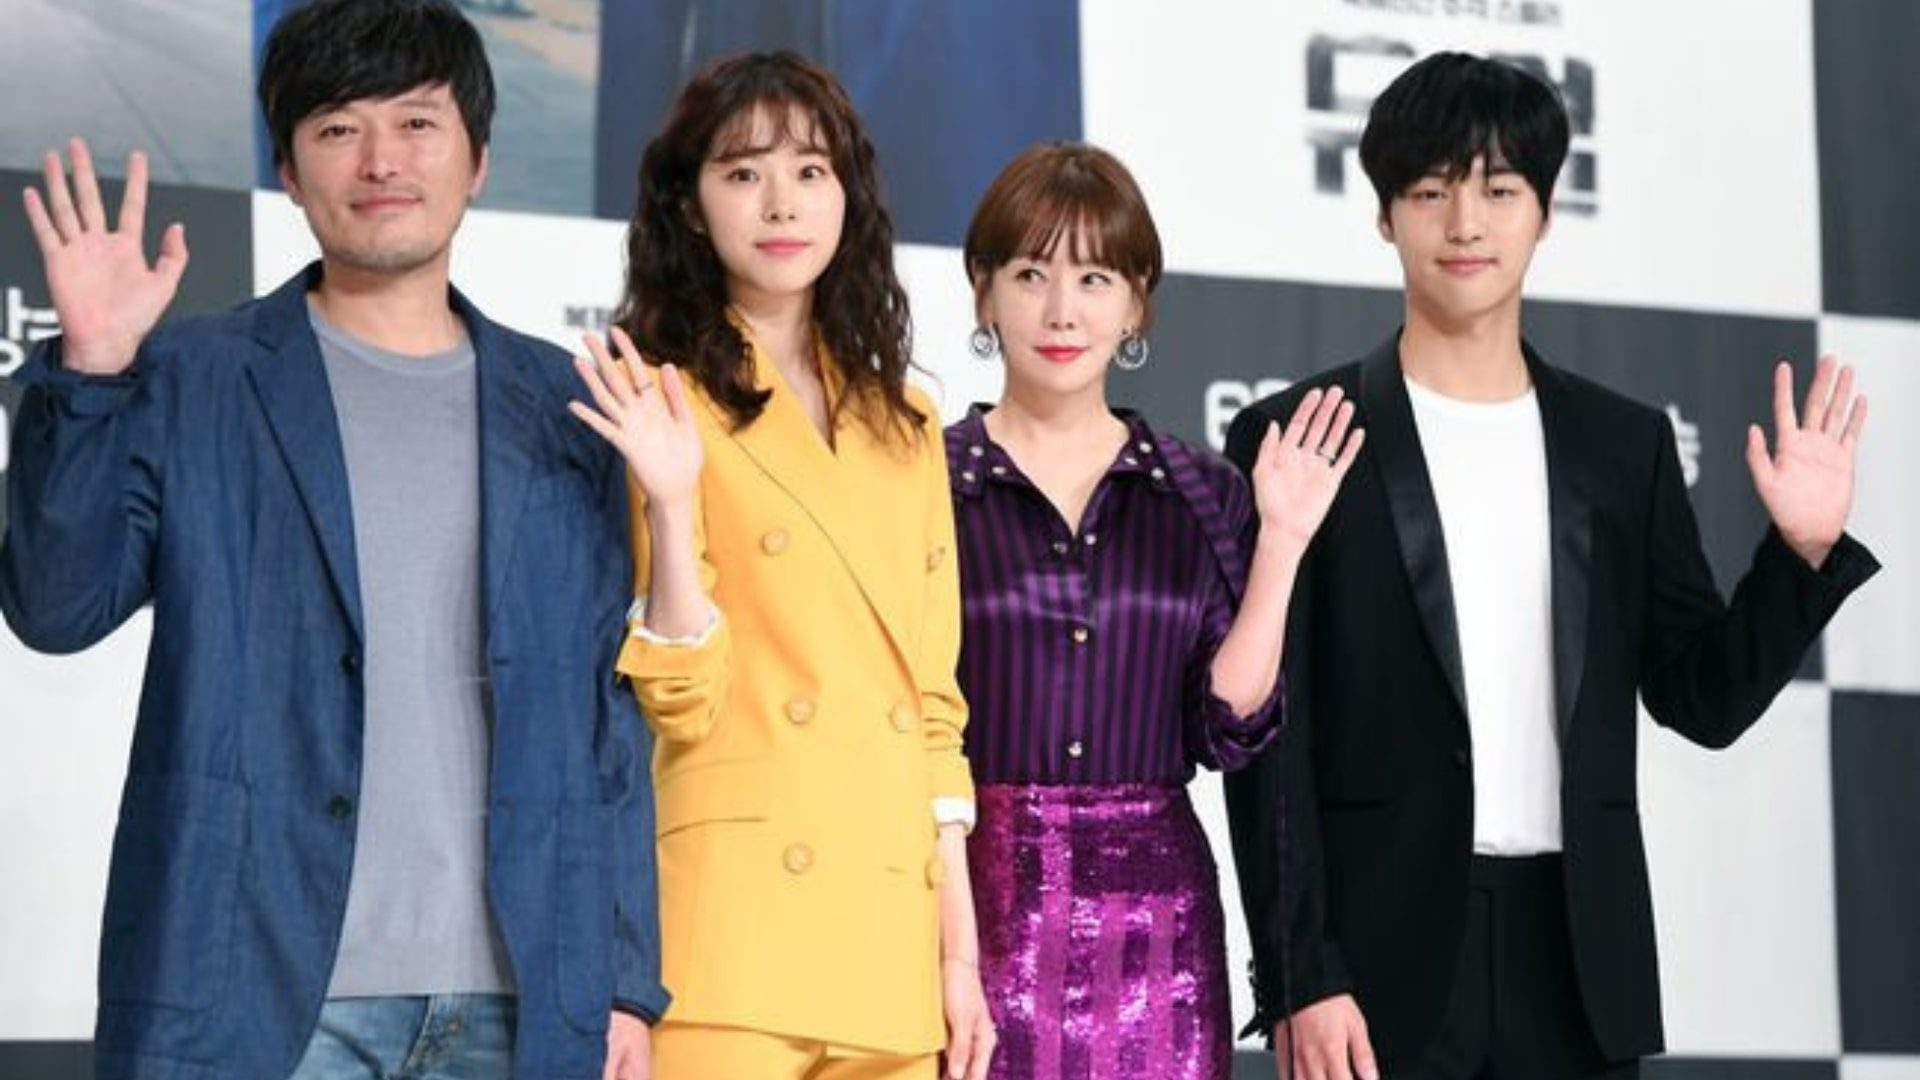 Duel Kdrama: Cast, Review & Where To Watch